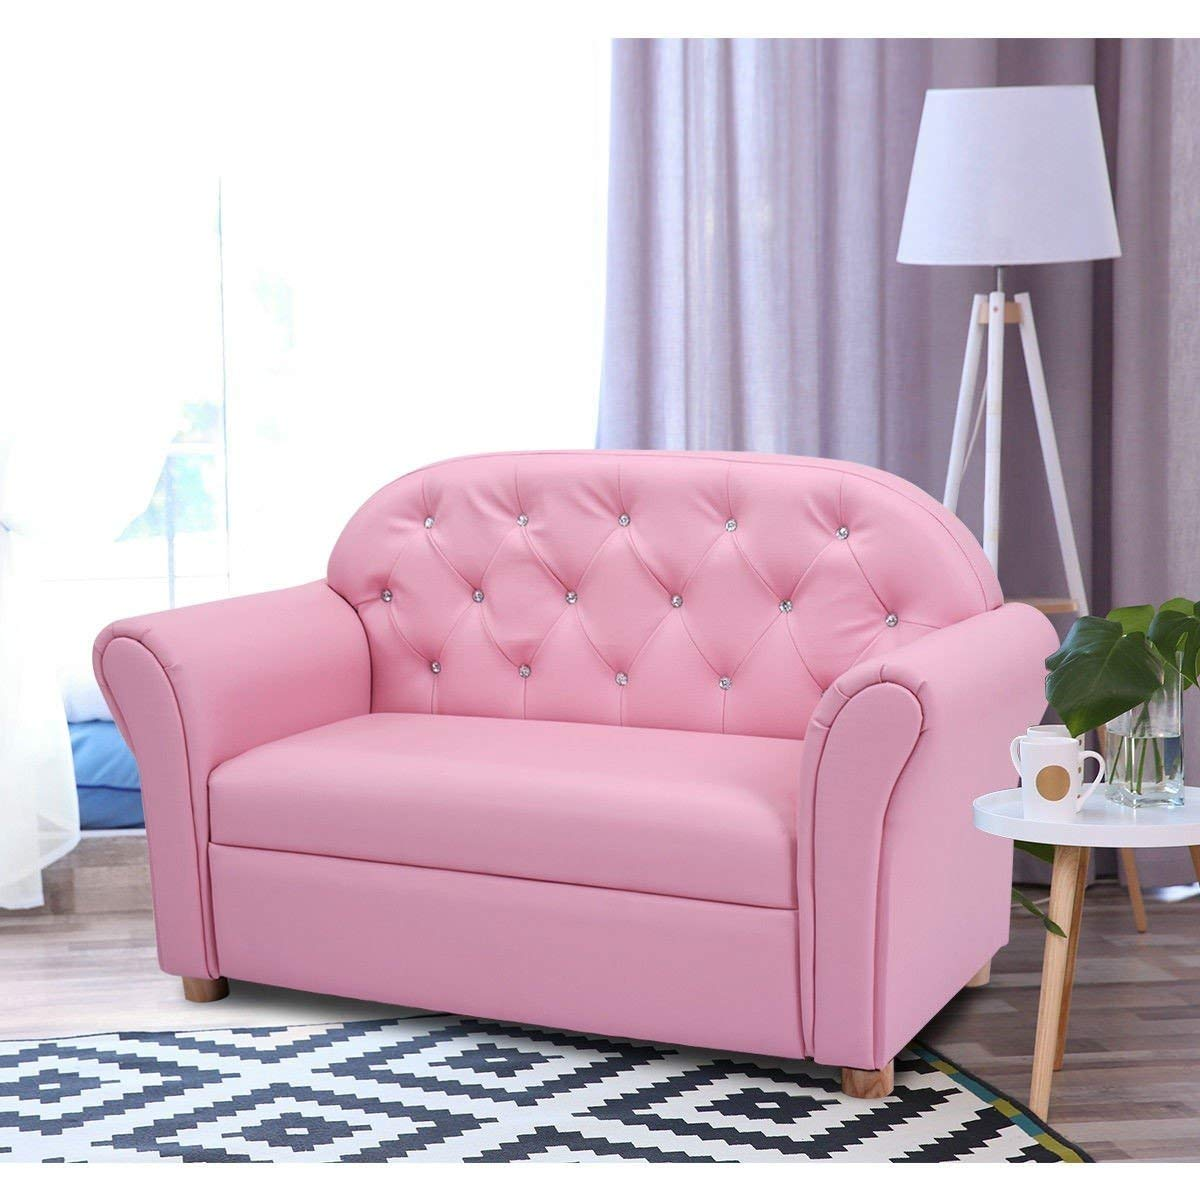 Kids Princess Armrest Lounge Couch Chair Sofa Children Toddler Gift Flip Open Loveseat Armchair Bed Sleeper Room Furniture BeUniqueToday